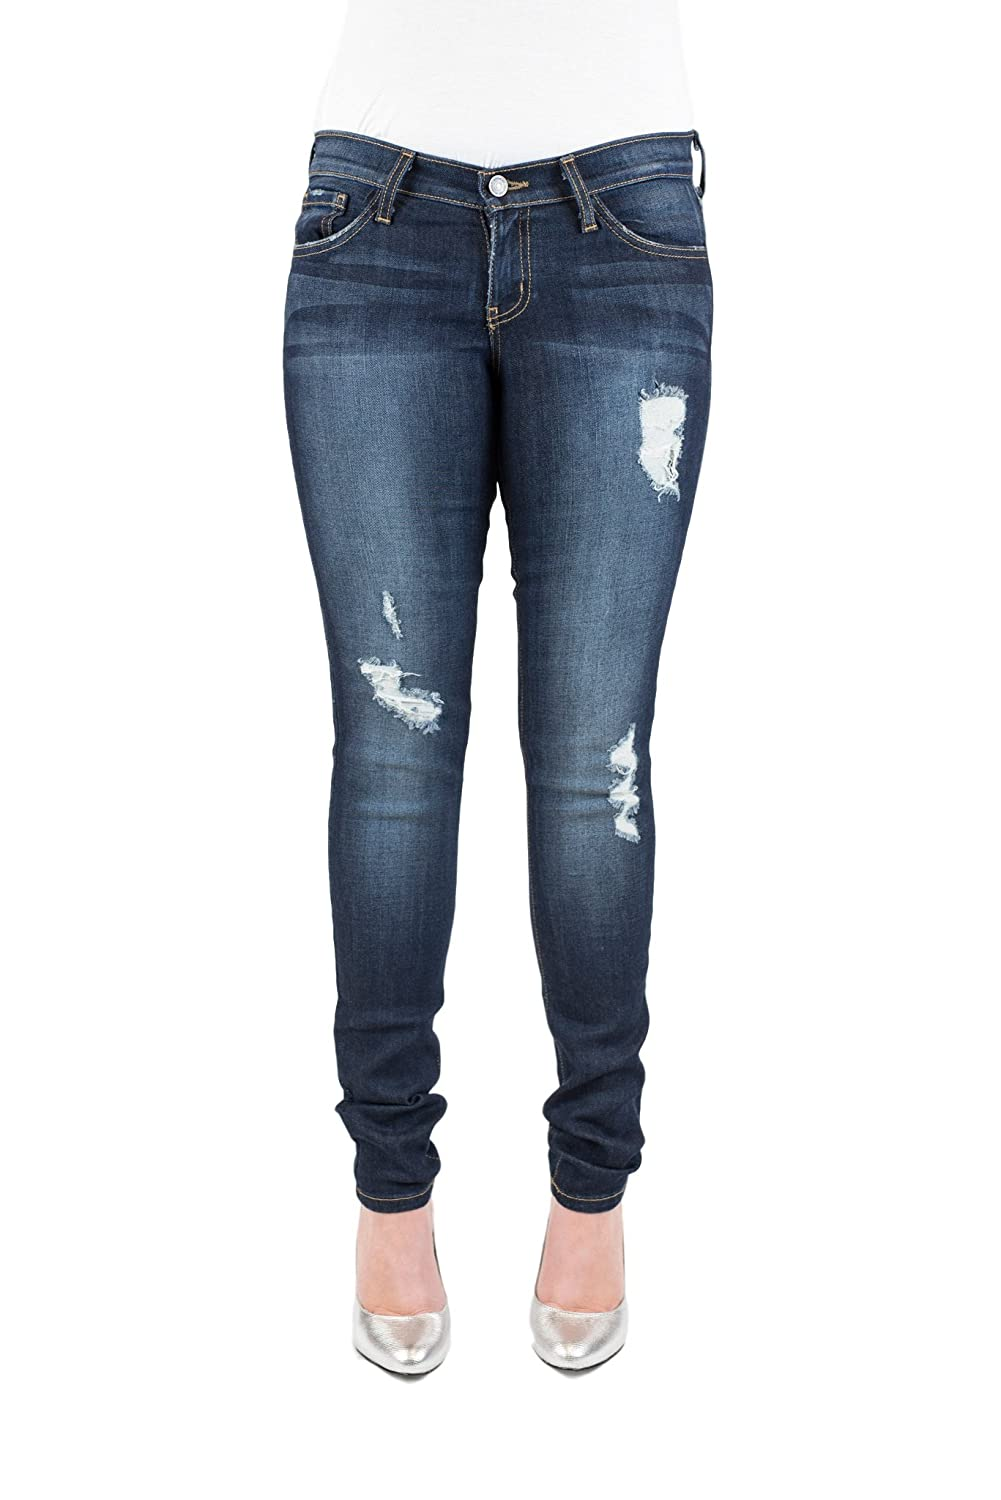 Flying Monkey Jeans Women's Paige Distressed Skinny Nightfall Blue Copper Stitching (27)